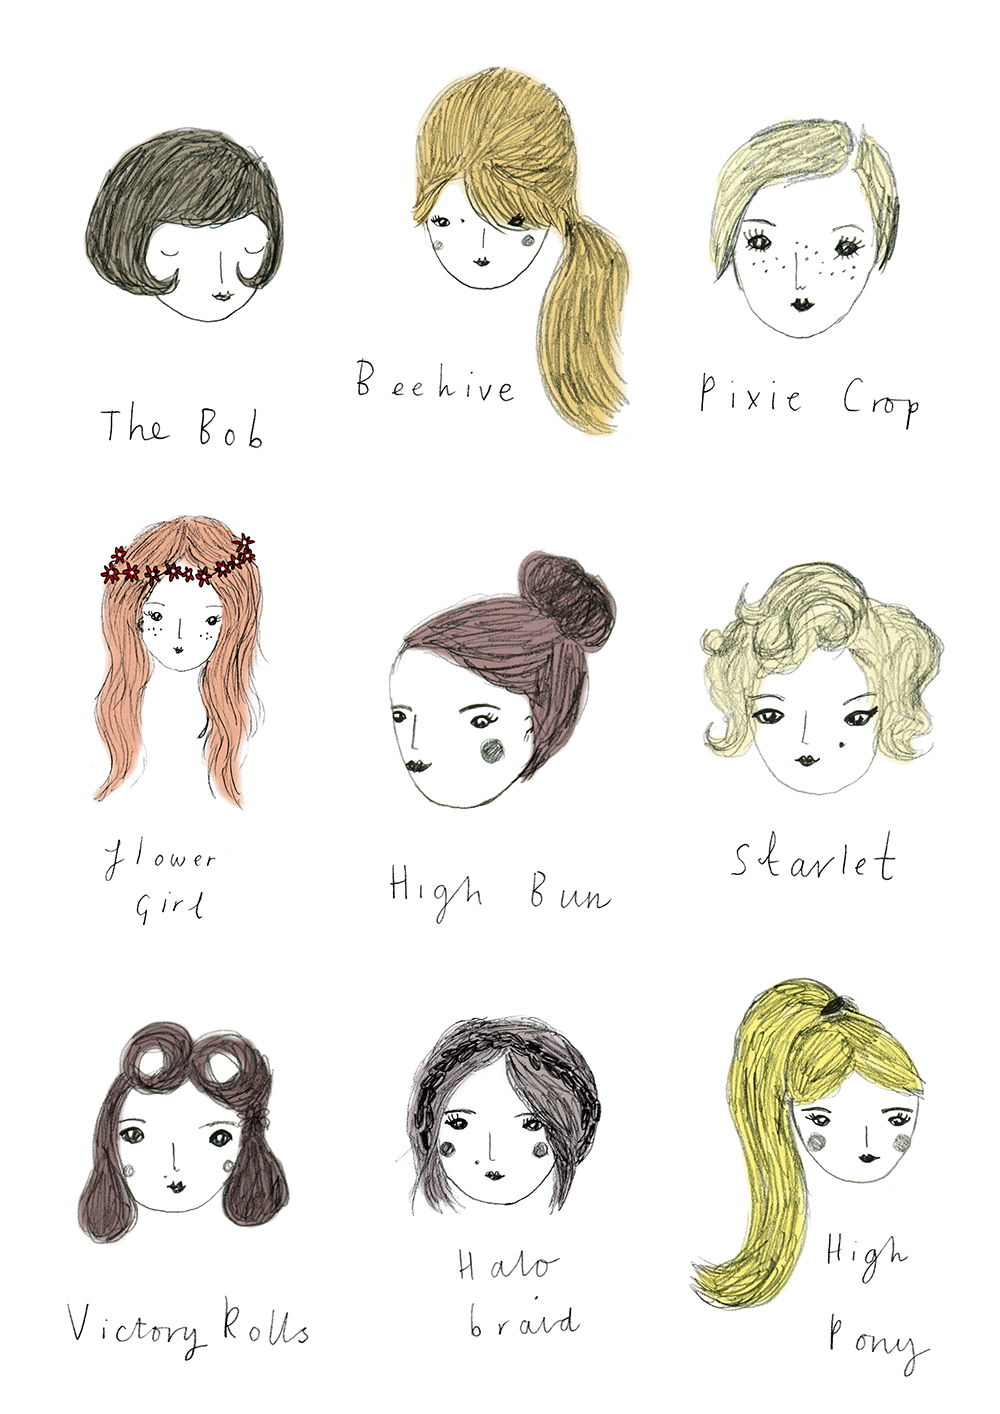 hairstyles_boden_illustration